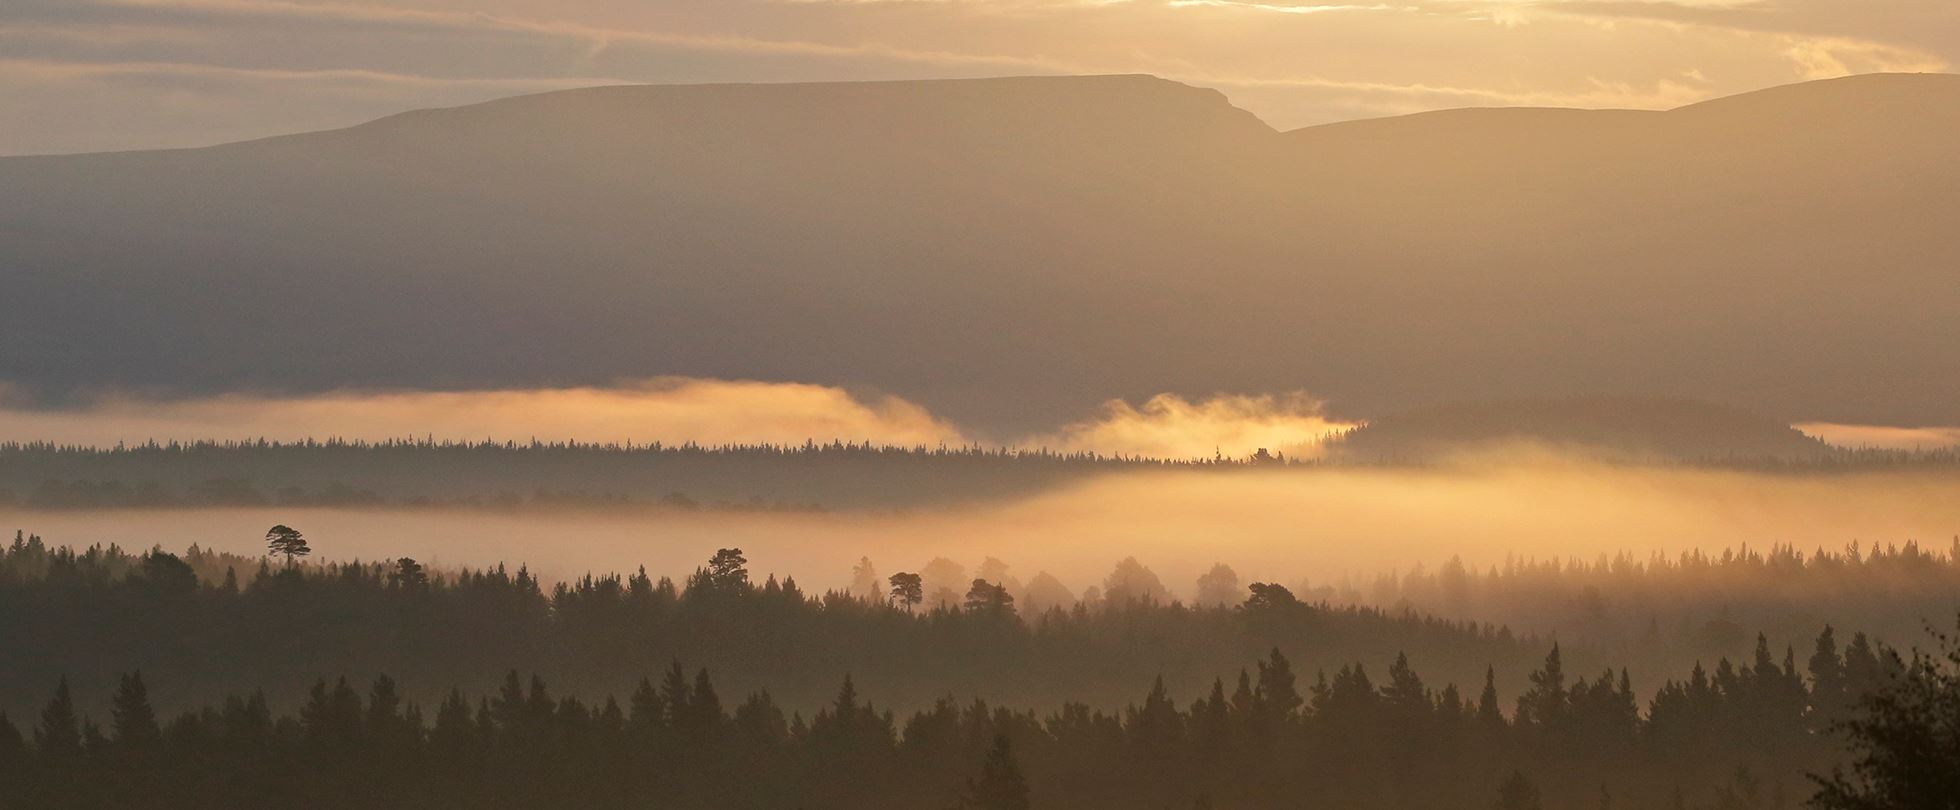 Looking over Rothiemurchus ancient caledonian pine forest at dawn. In the Cairngorms National Park, Highlands, Scotland, UK